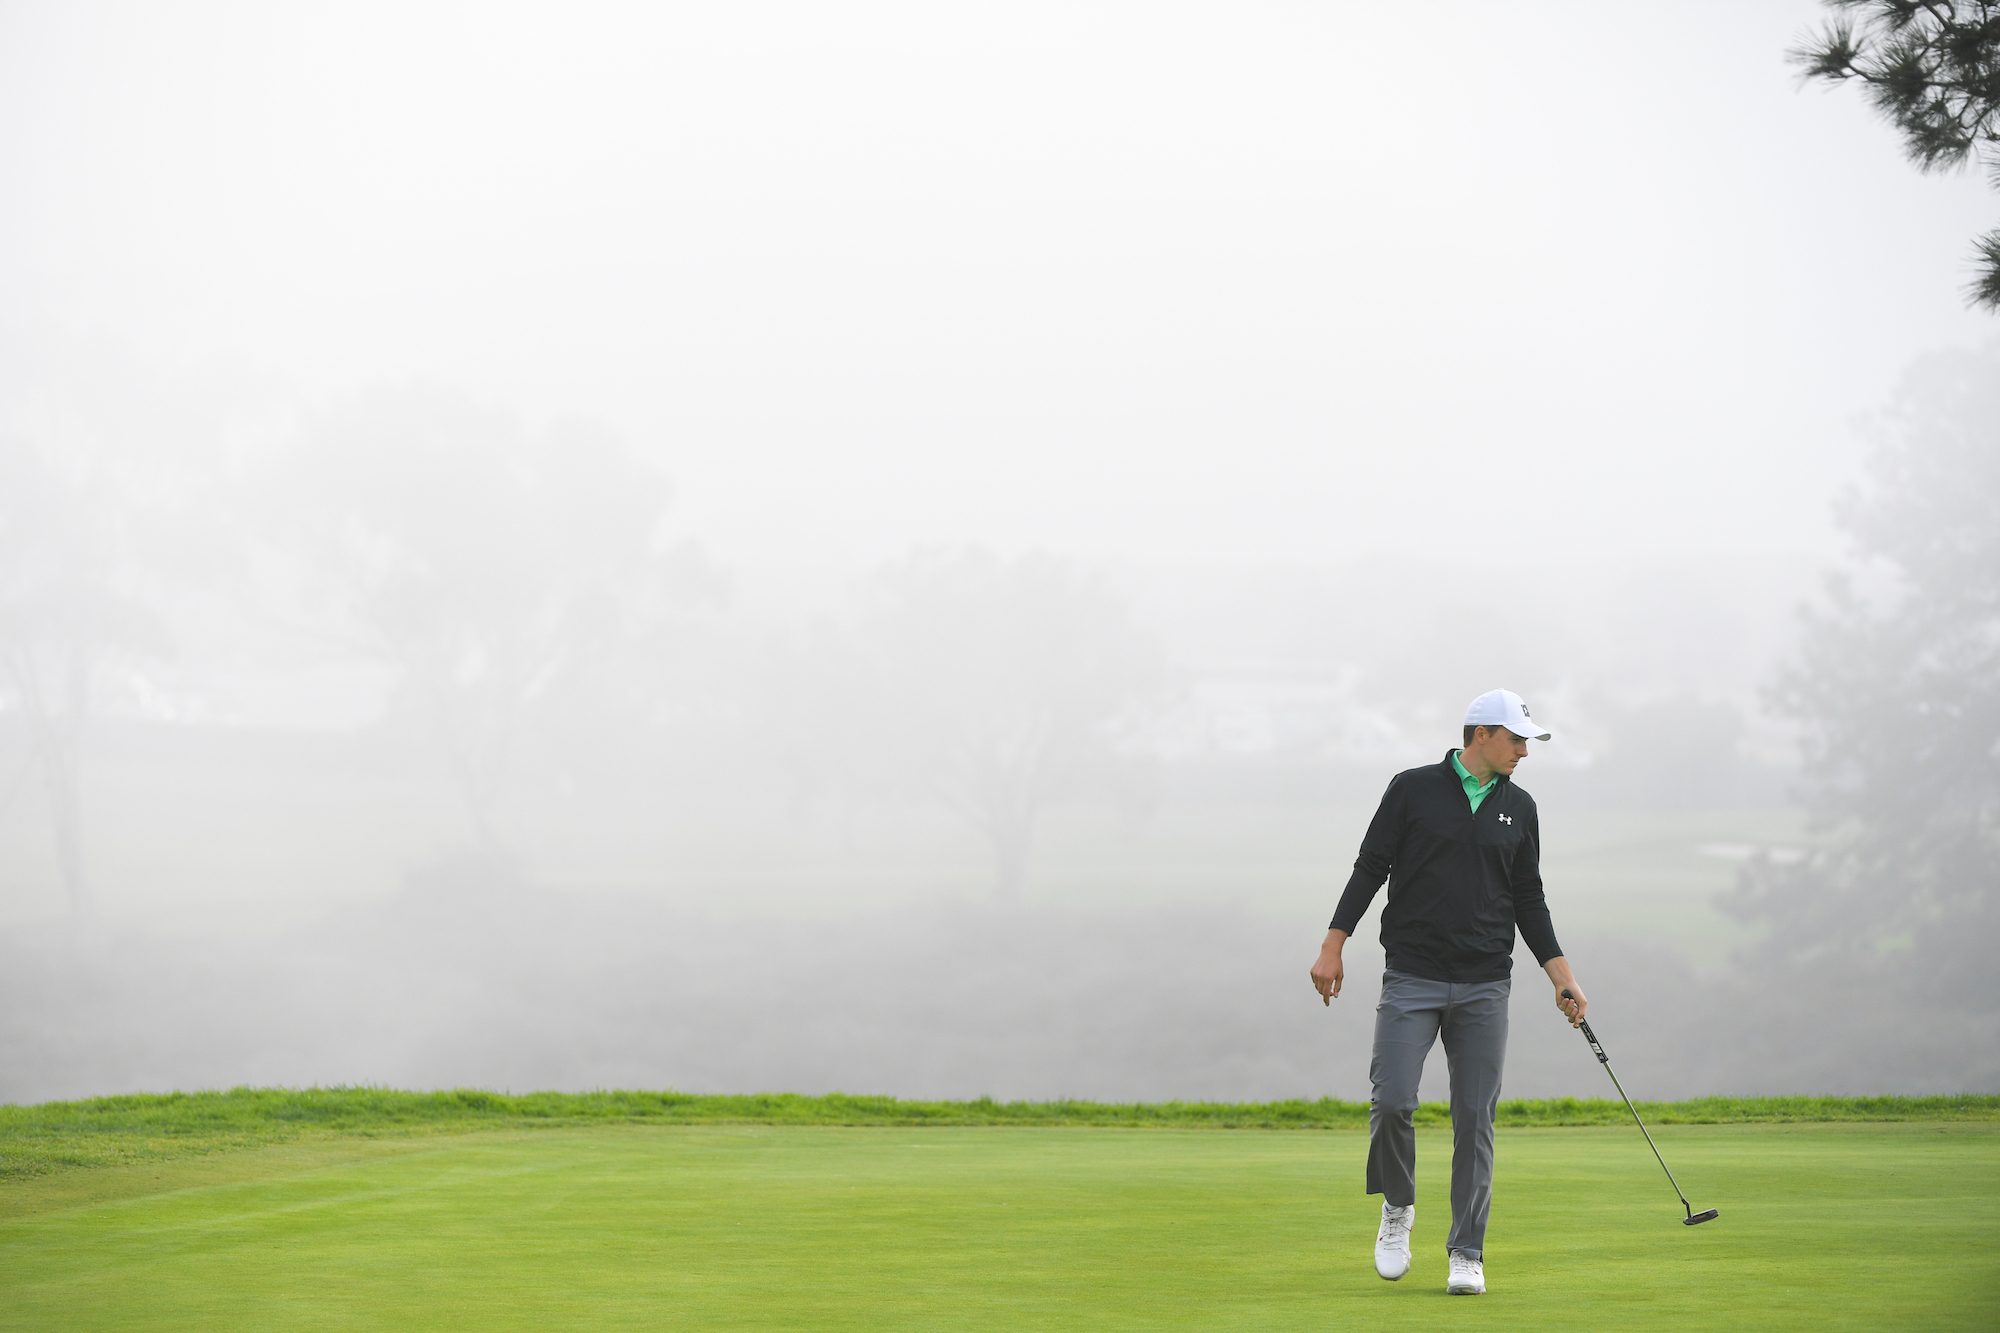 2020 Farmers Insurance Open: Round 1 - Fog-Shrouded Green on No. 16